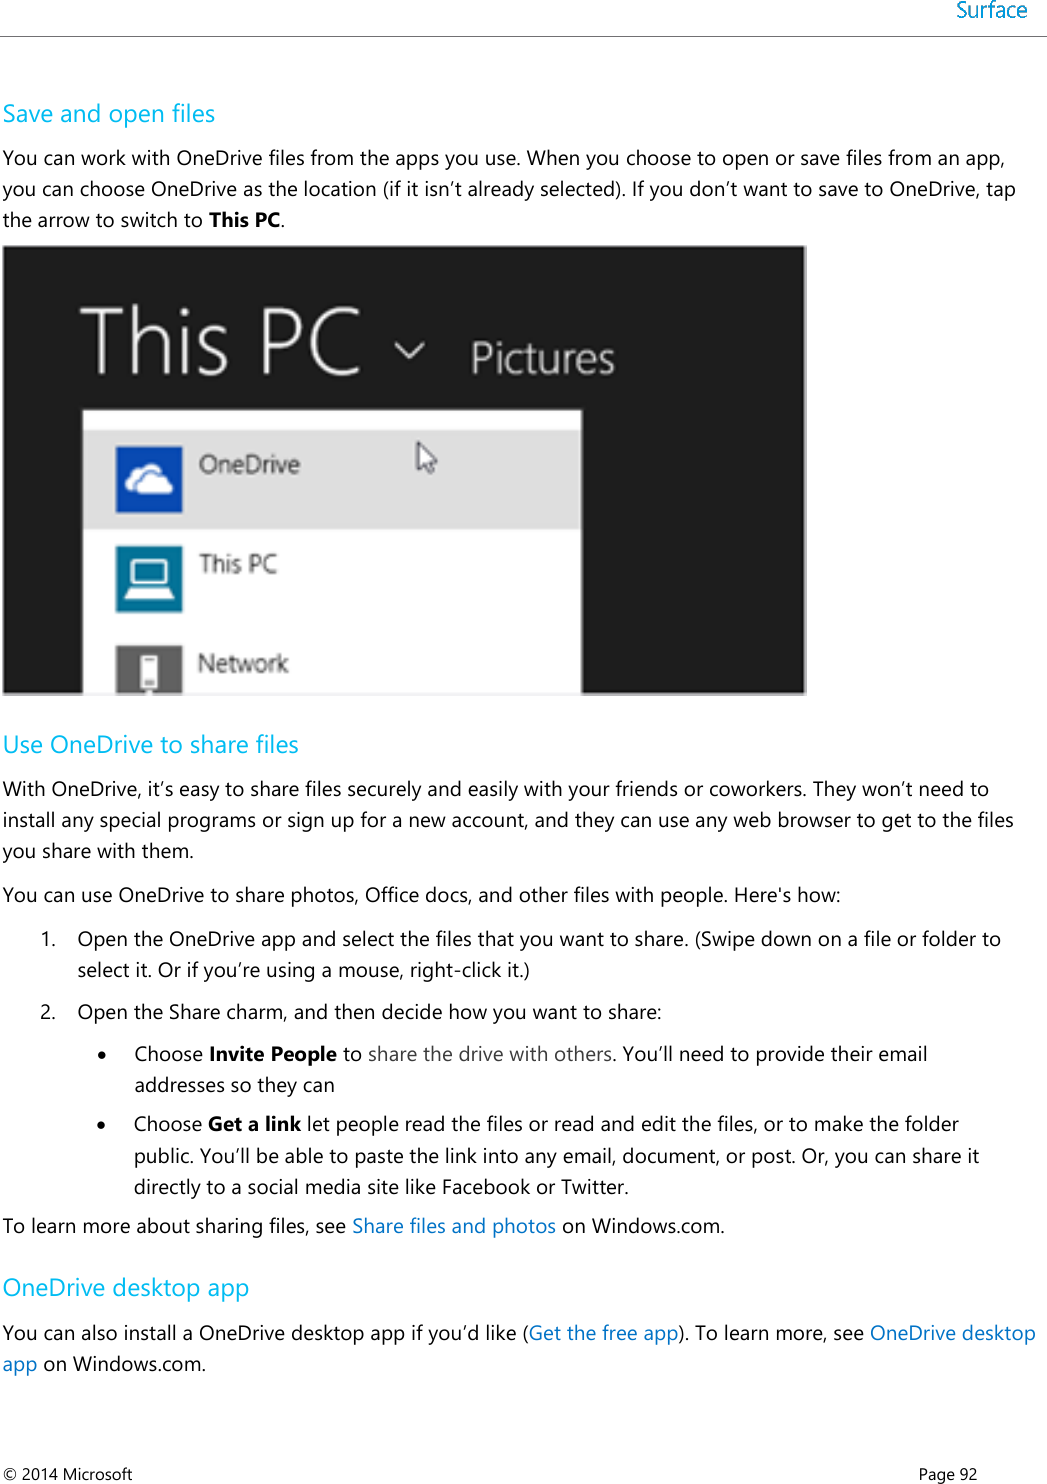 surface pro 3 user manual download